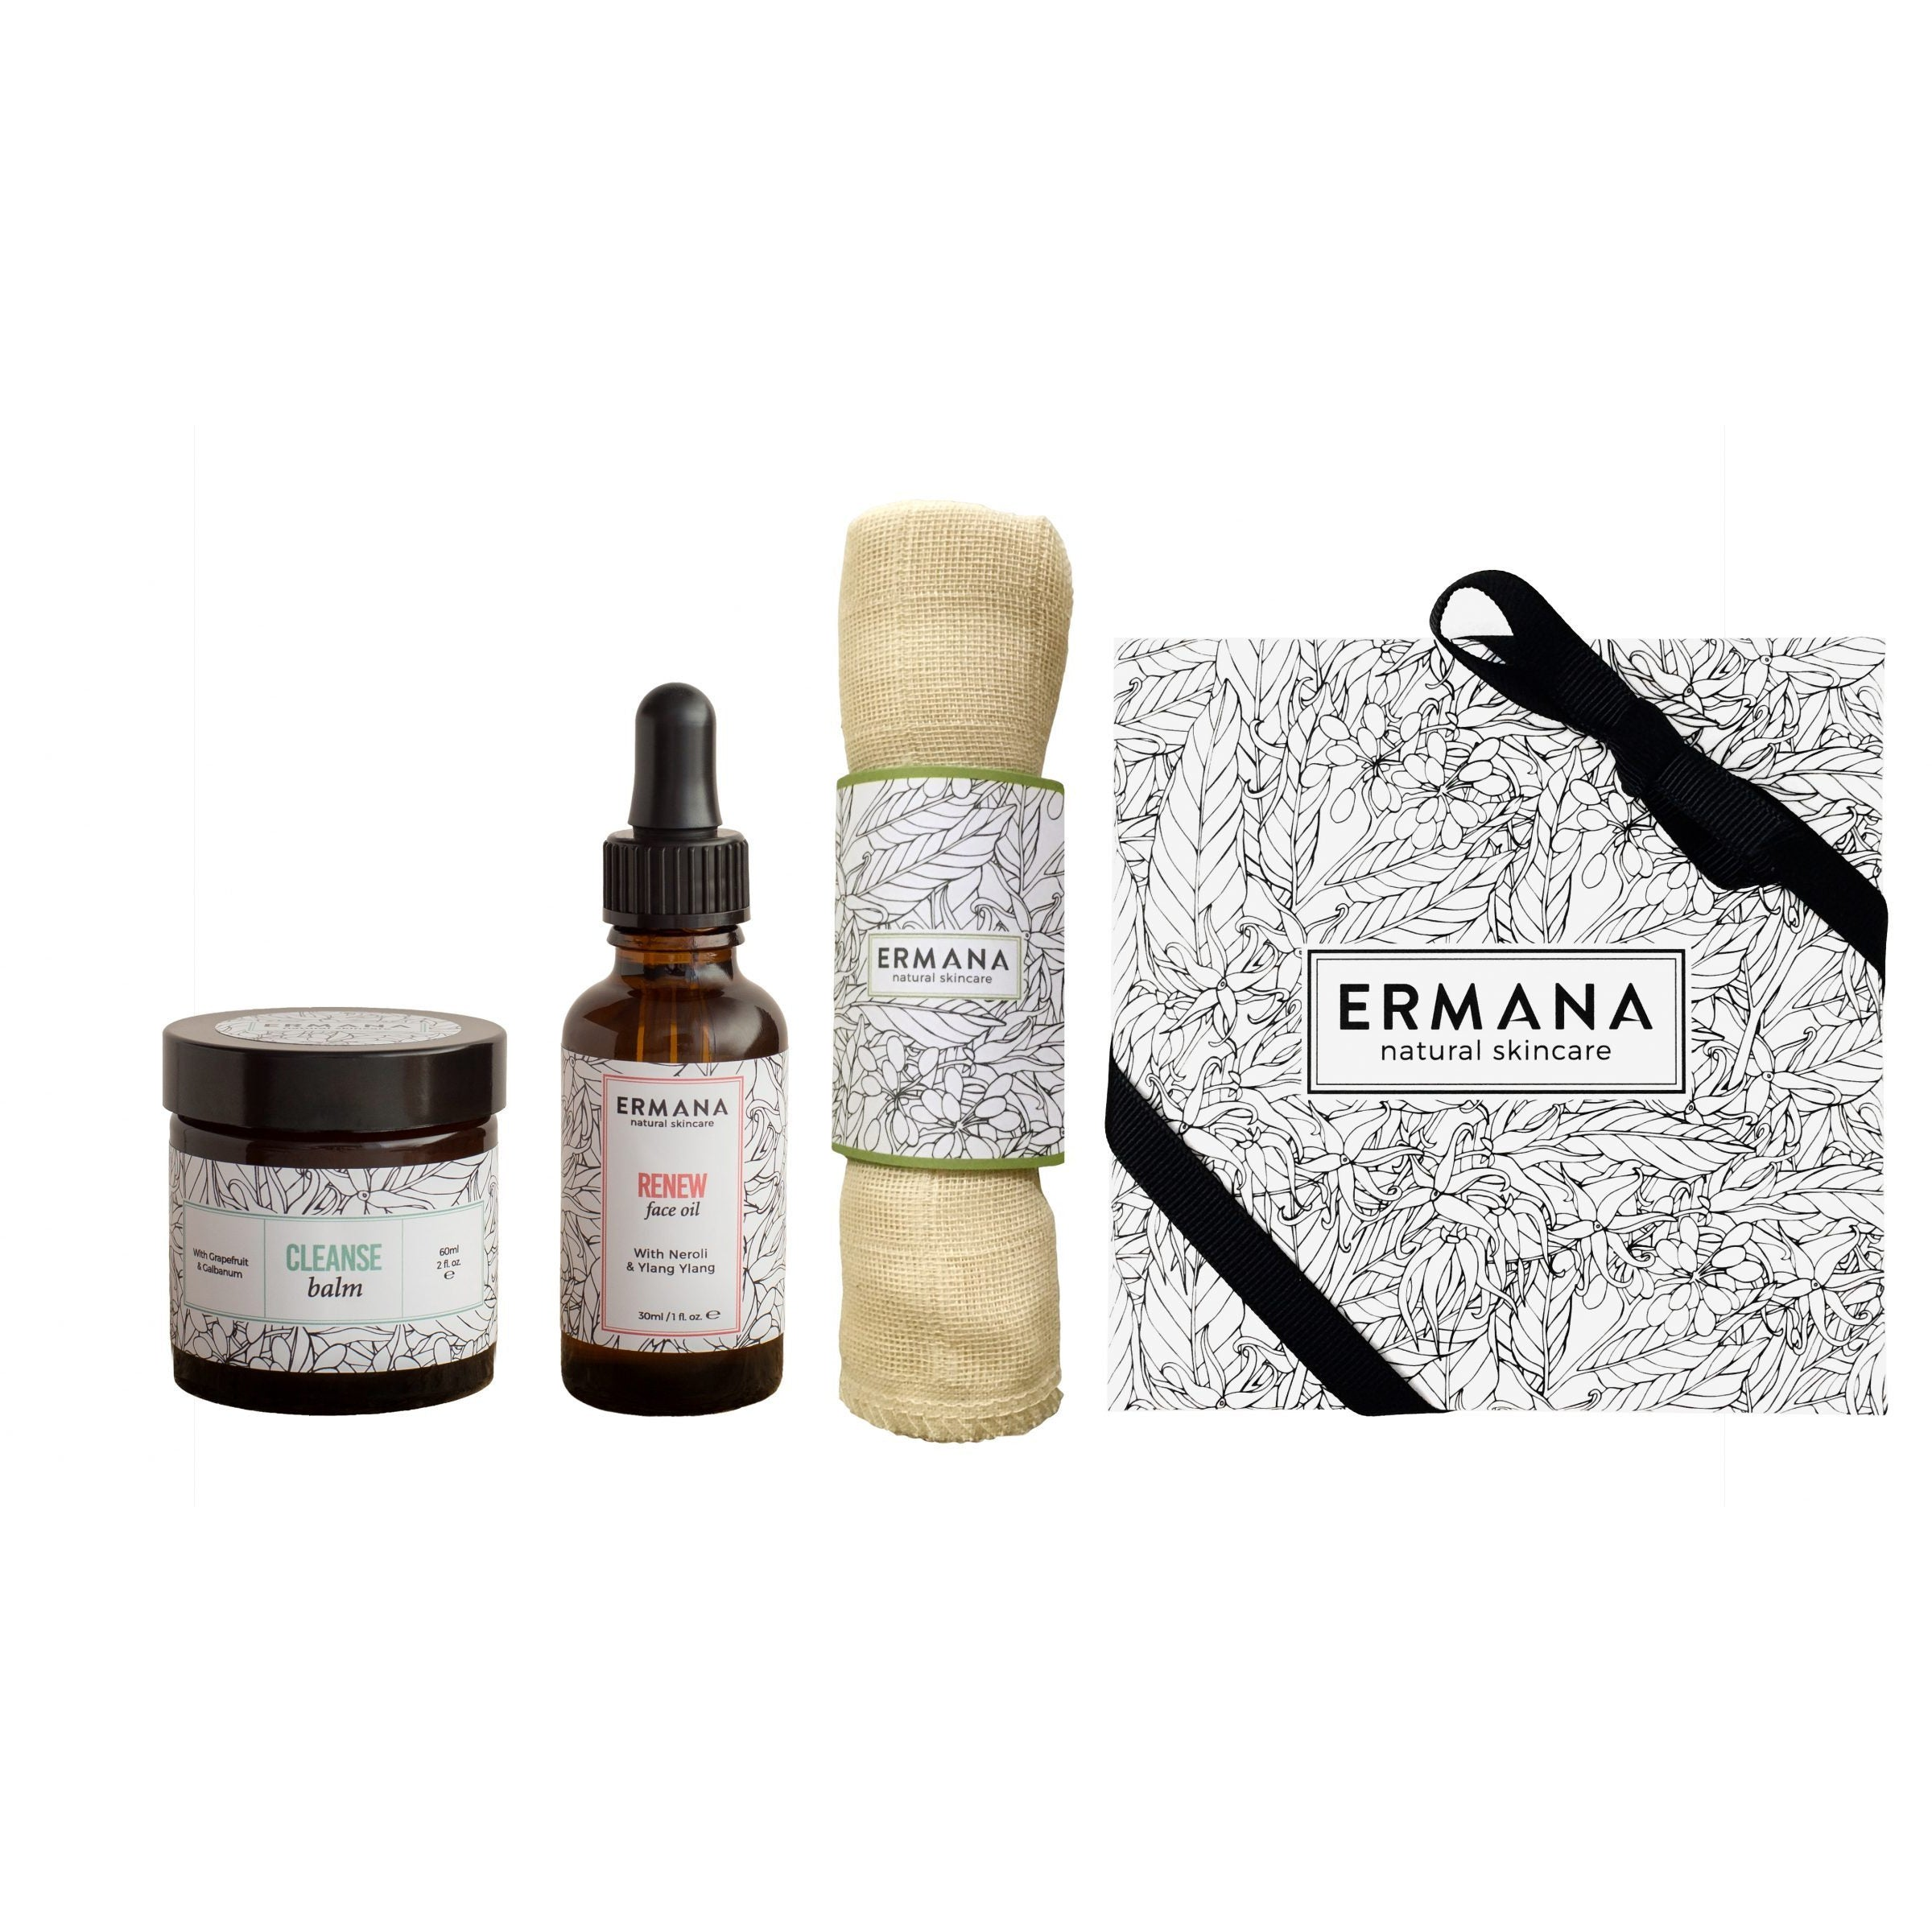 Renew Gift Set with renew face oil and cleanse balm - Ermana Natural Skincare